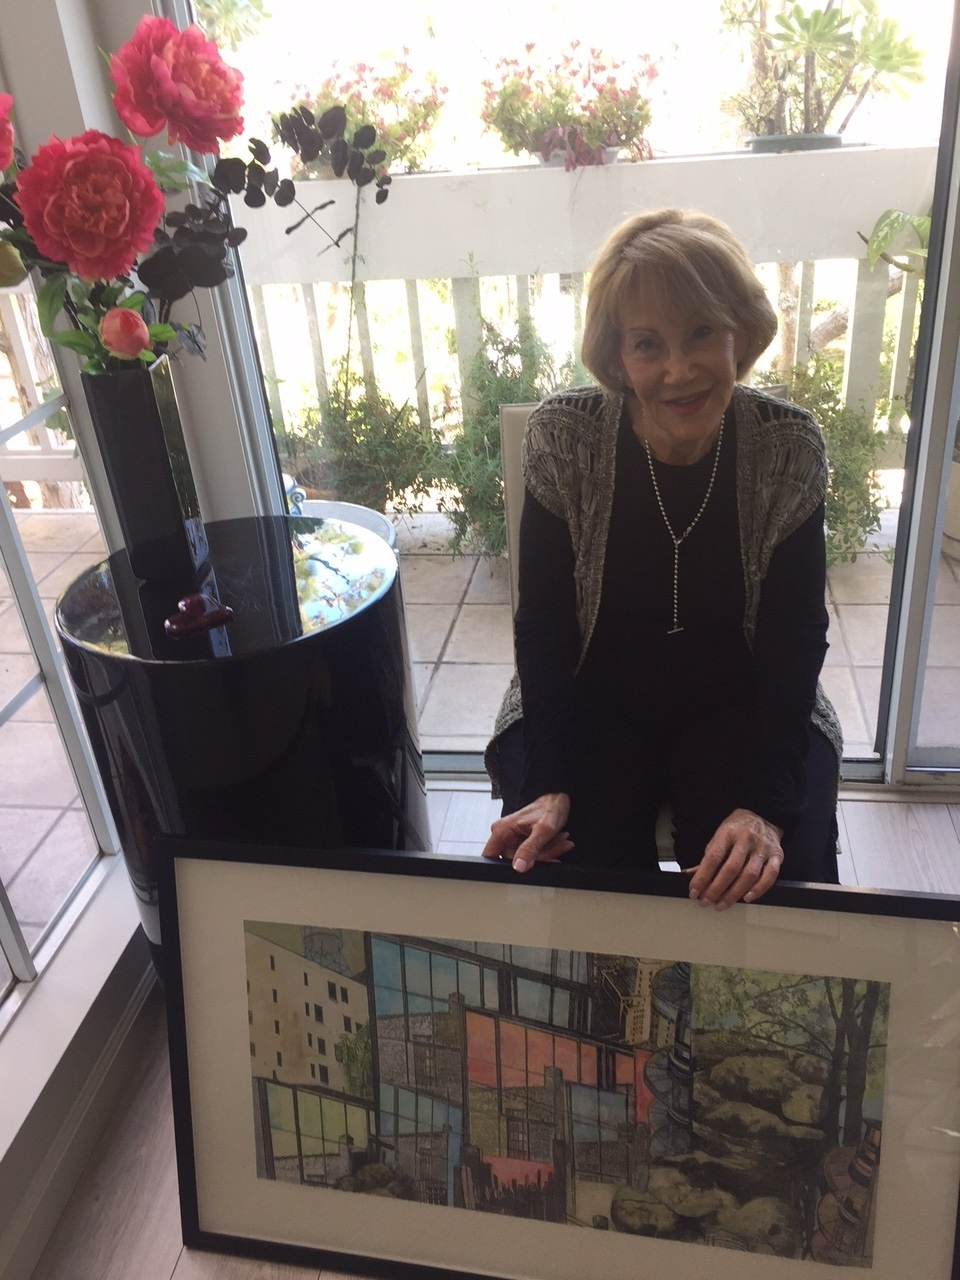 Beth's mom Evelyn at age 86, with her newest painting